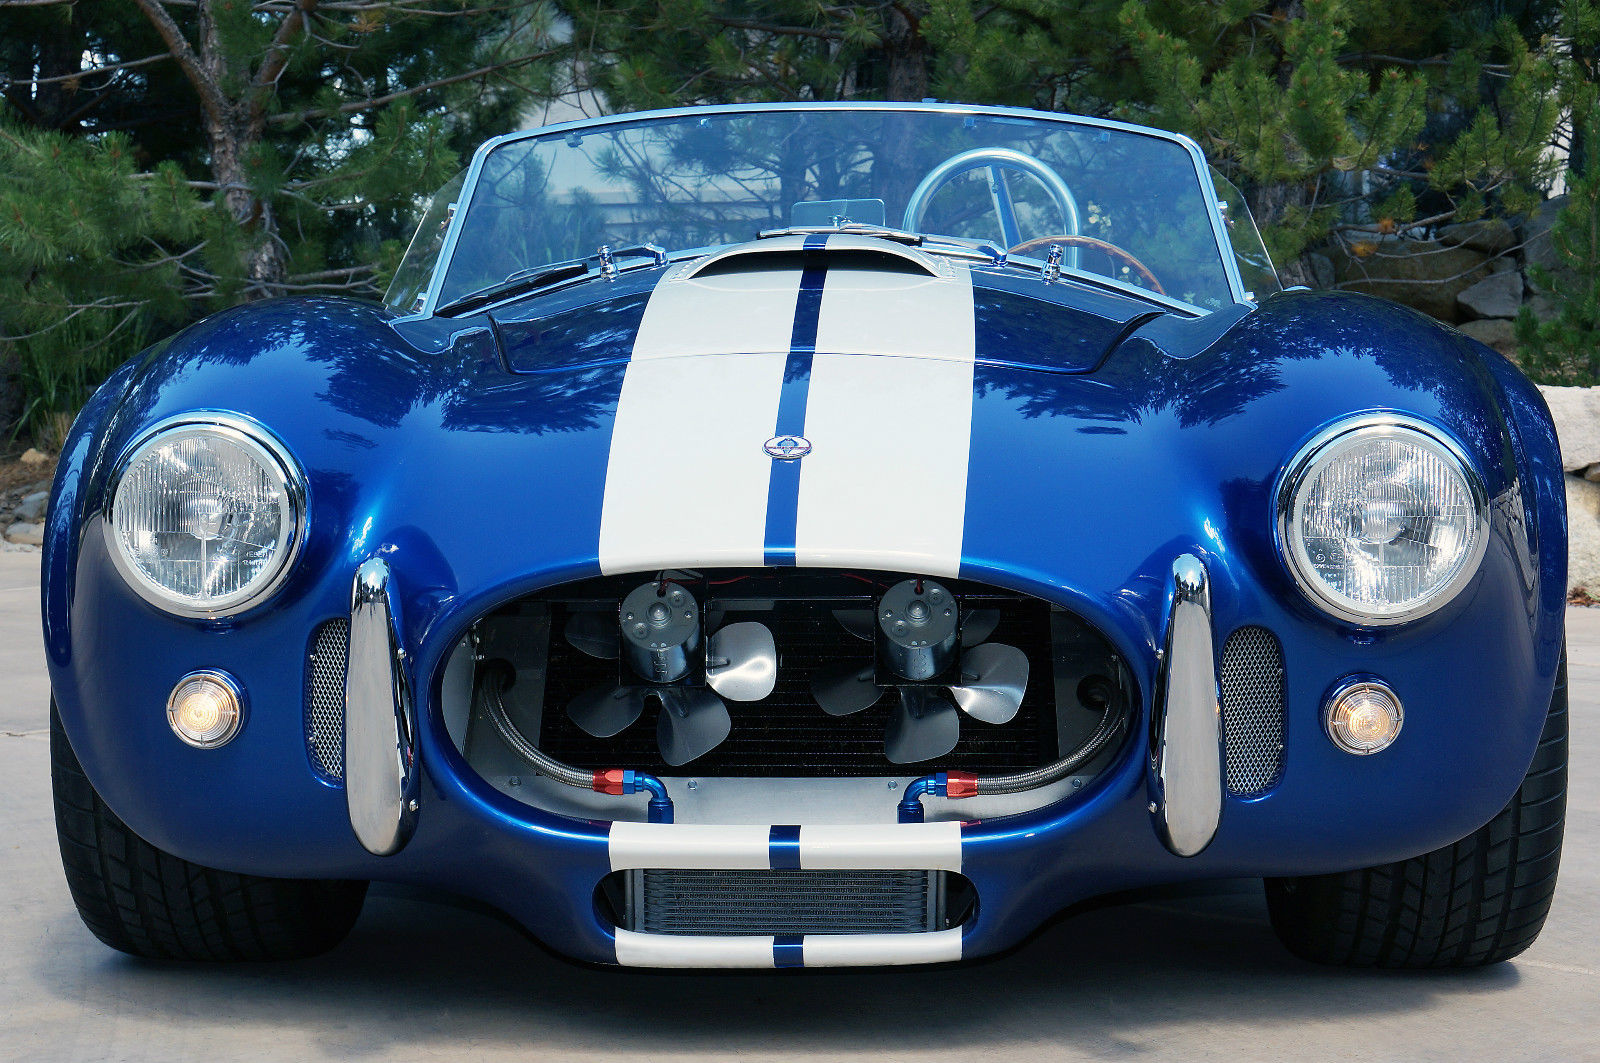 Era 1965 Shelby Cobra Replica Era 430 Blue W White